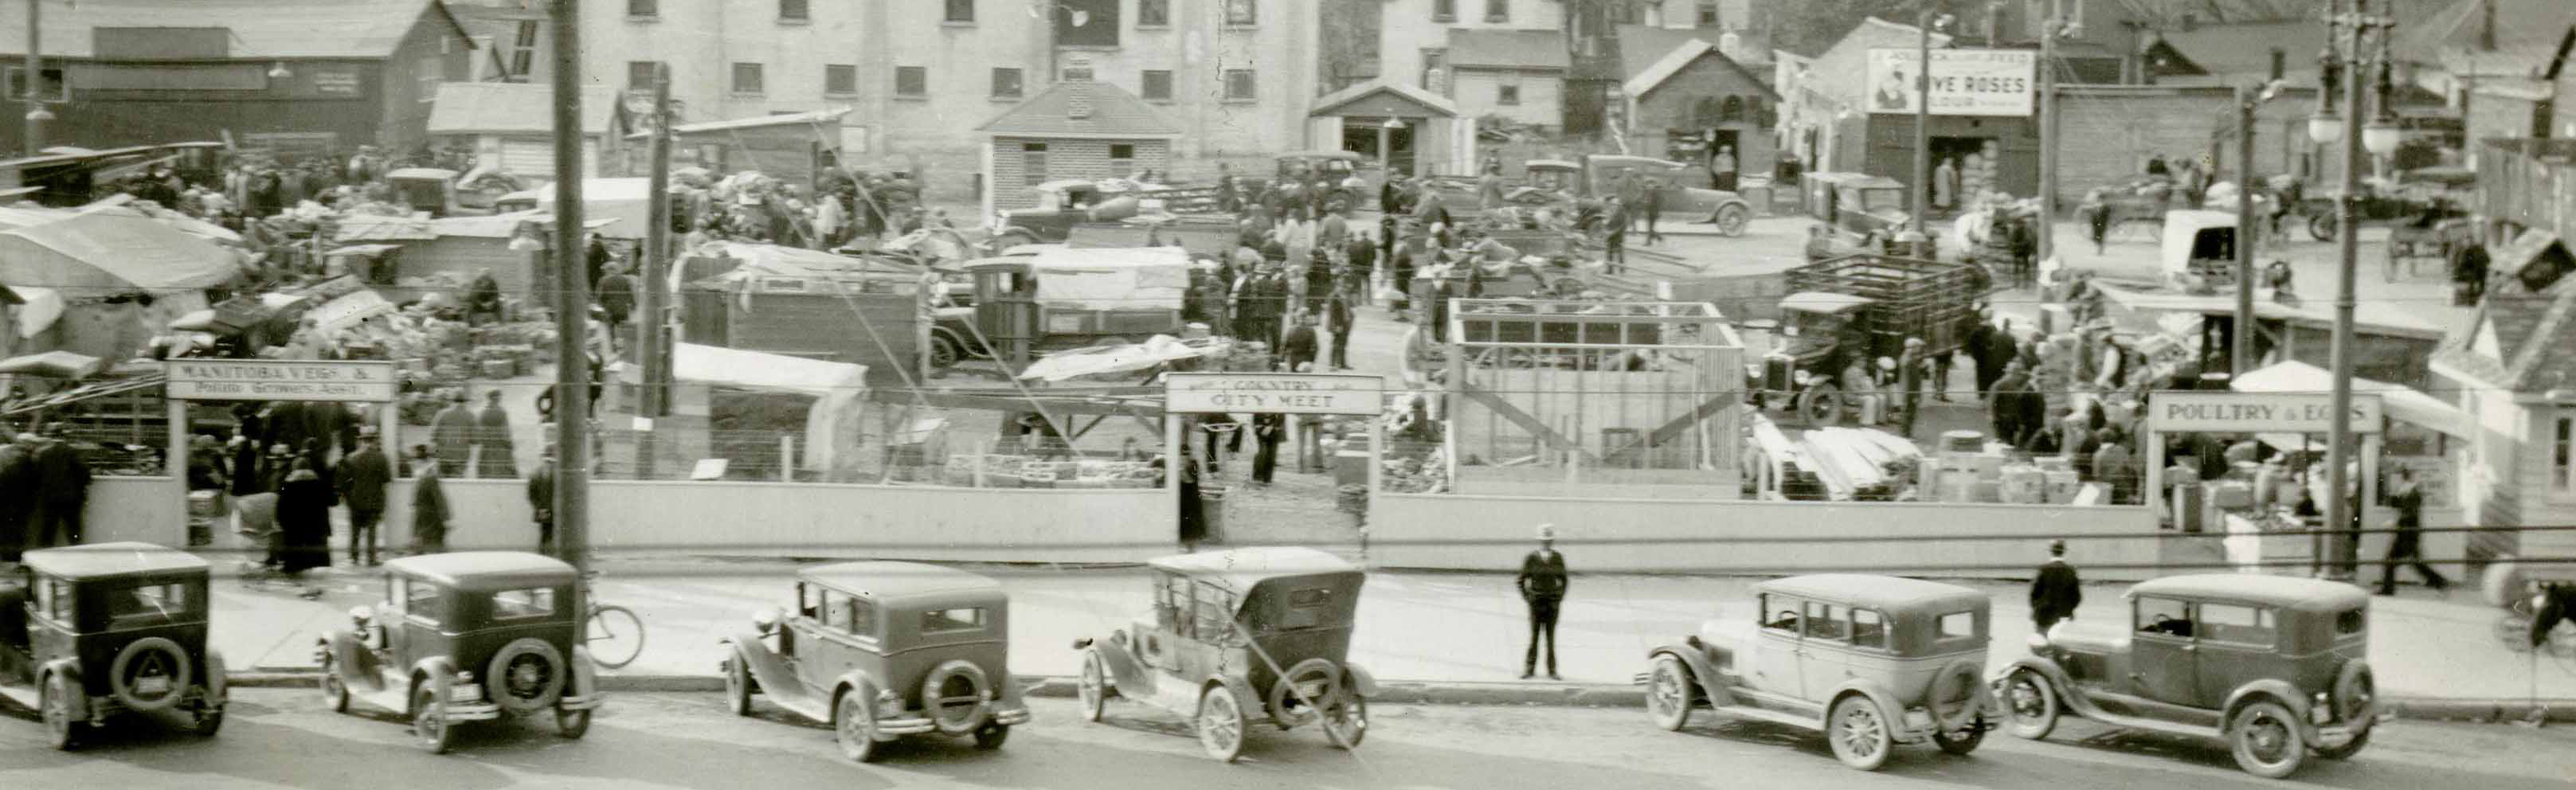 North End Farmers' Market, 1930